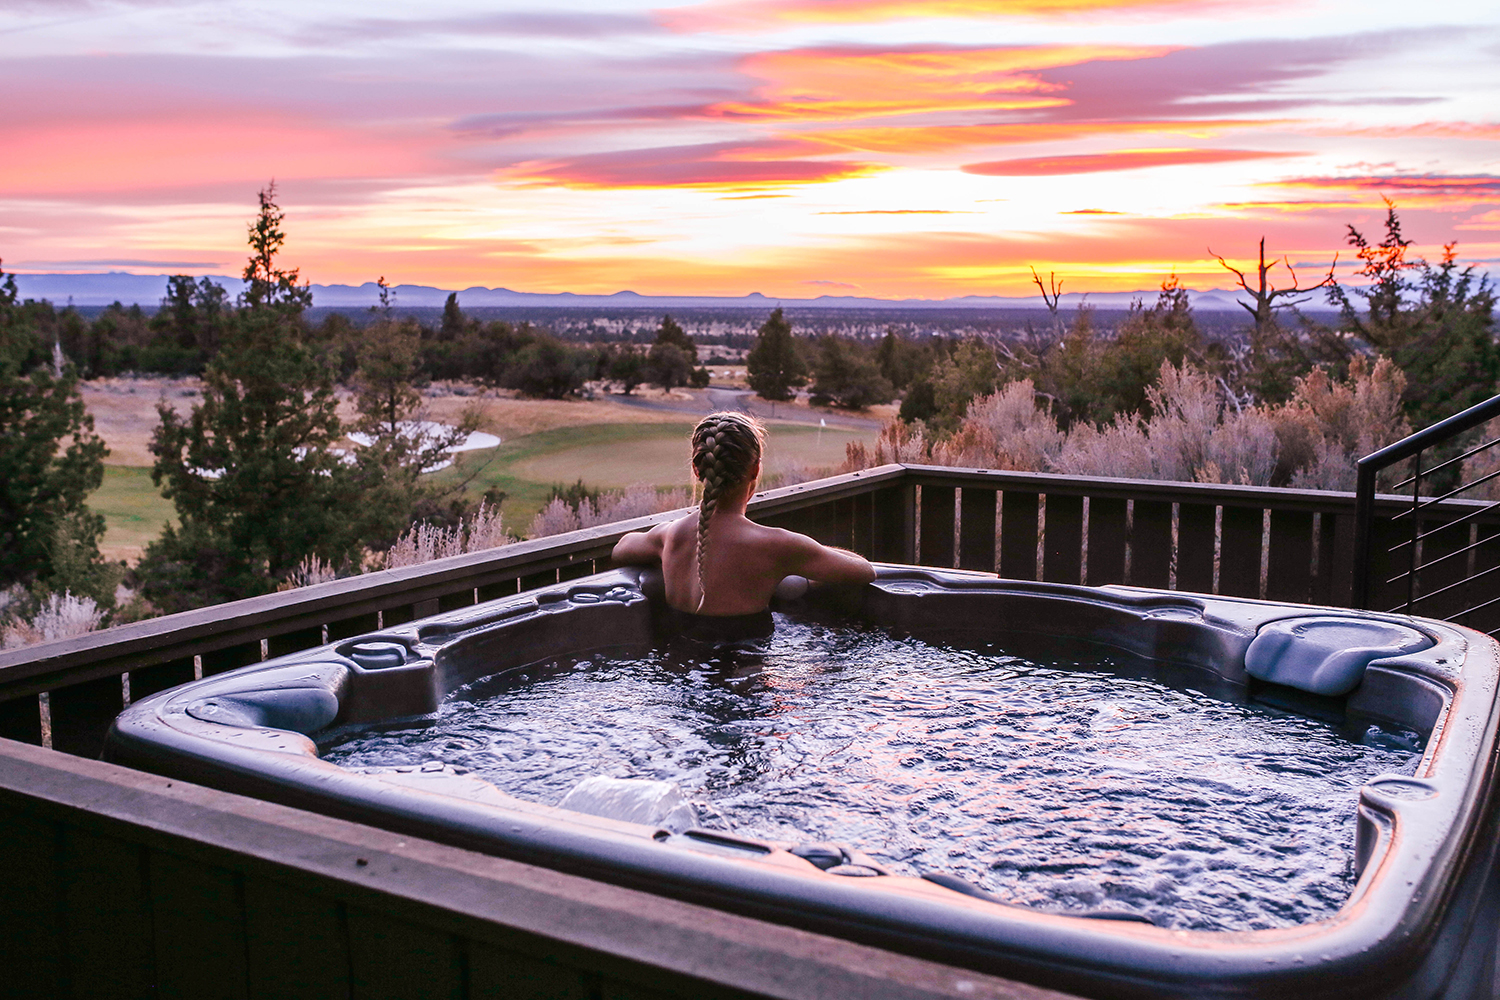 Before or after treatments, guests can relax in the adults-only hot tub.